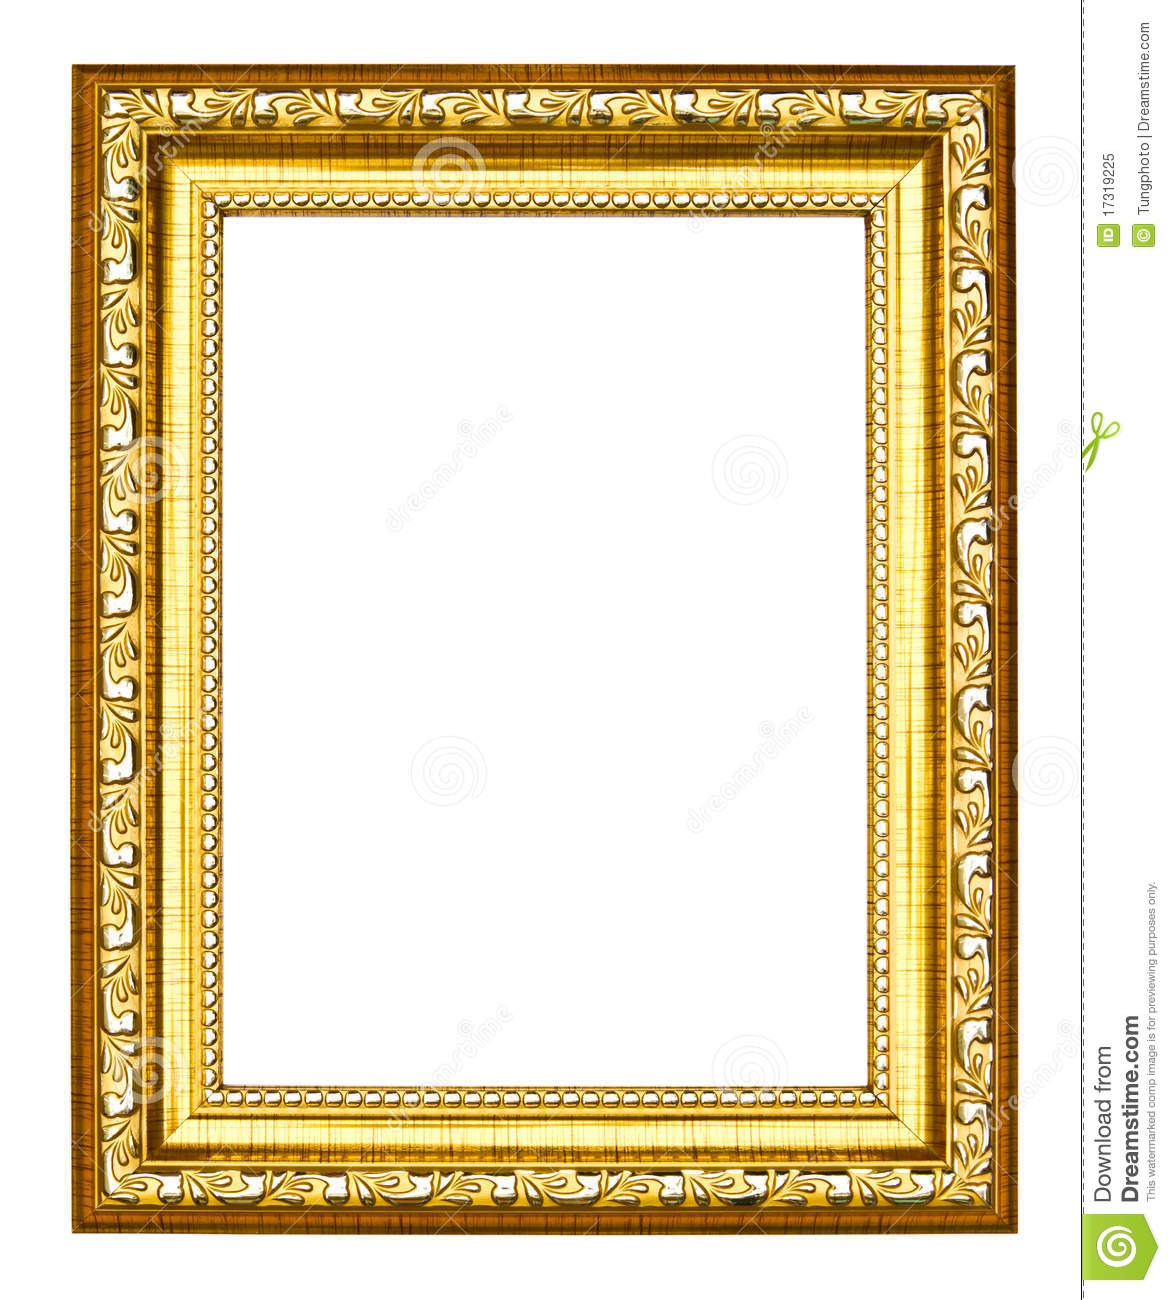 Silver Photo Frames Australia Ancient Style Golden Photo Image Frame Royalty Free Stock